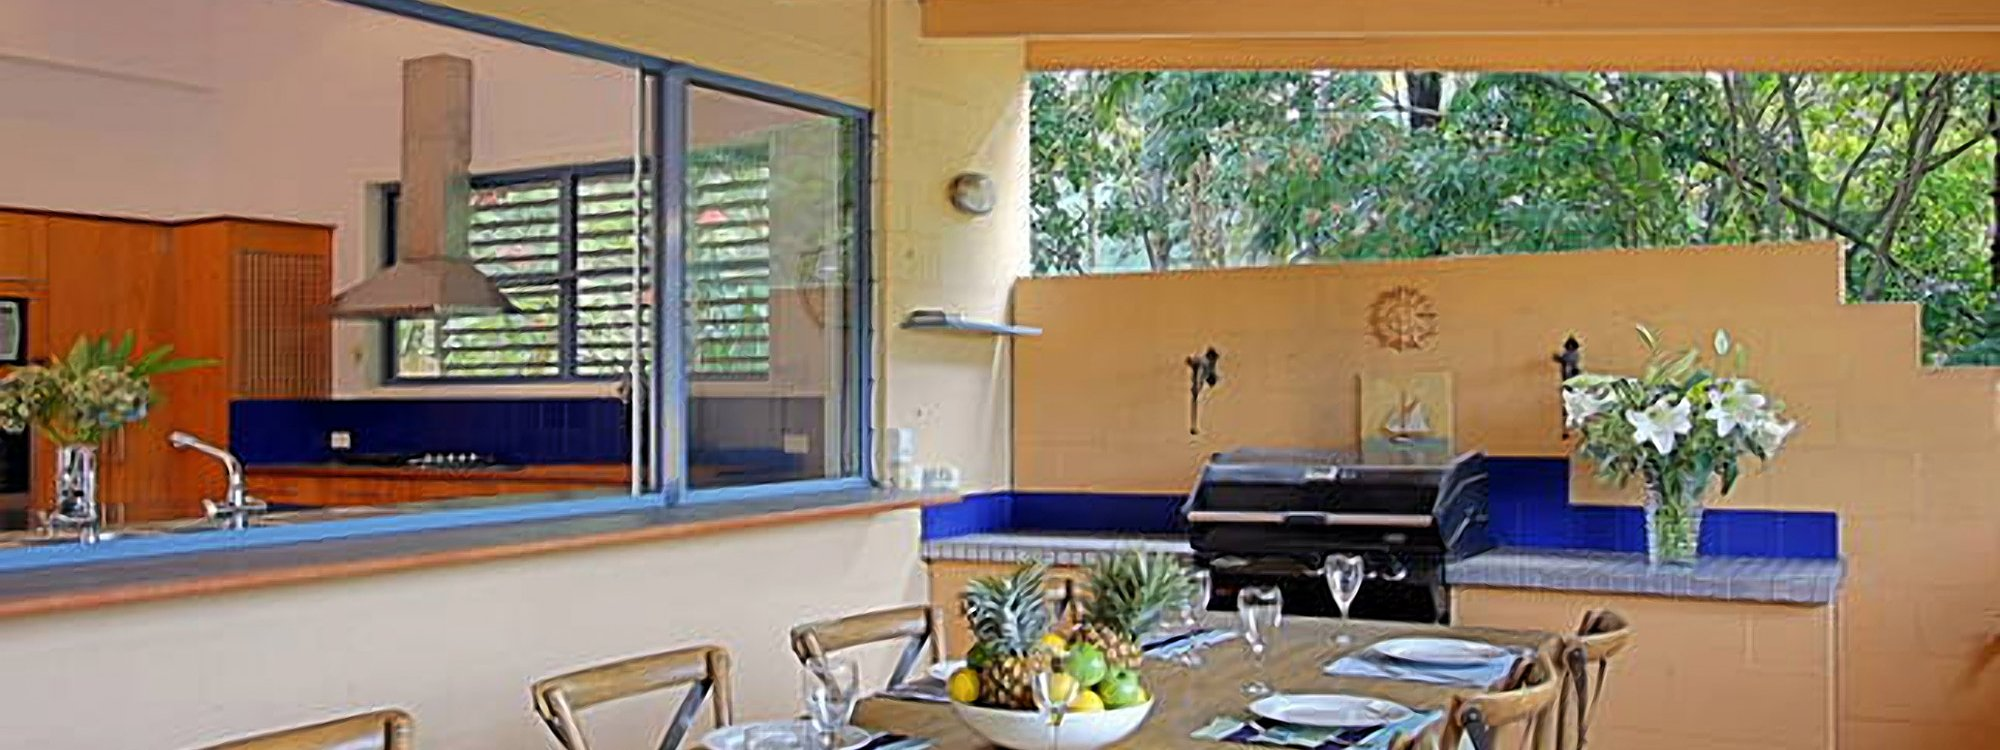 Aurora Byron Bay - Outdoor dining and BBQ area into kitchen